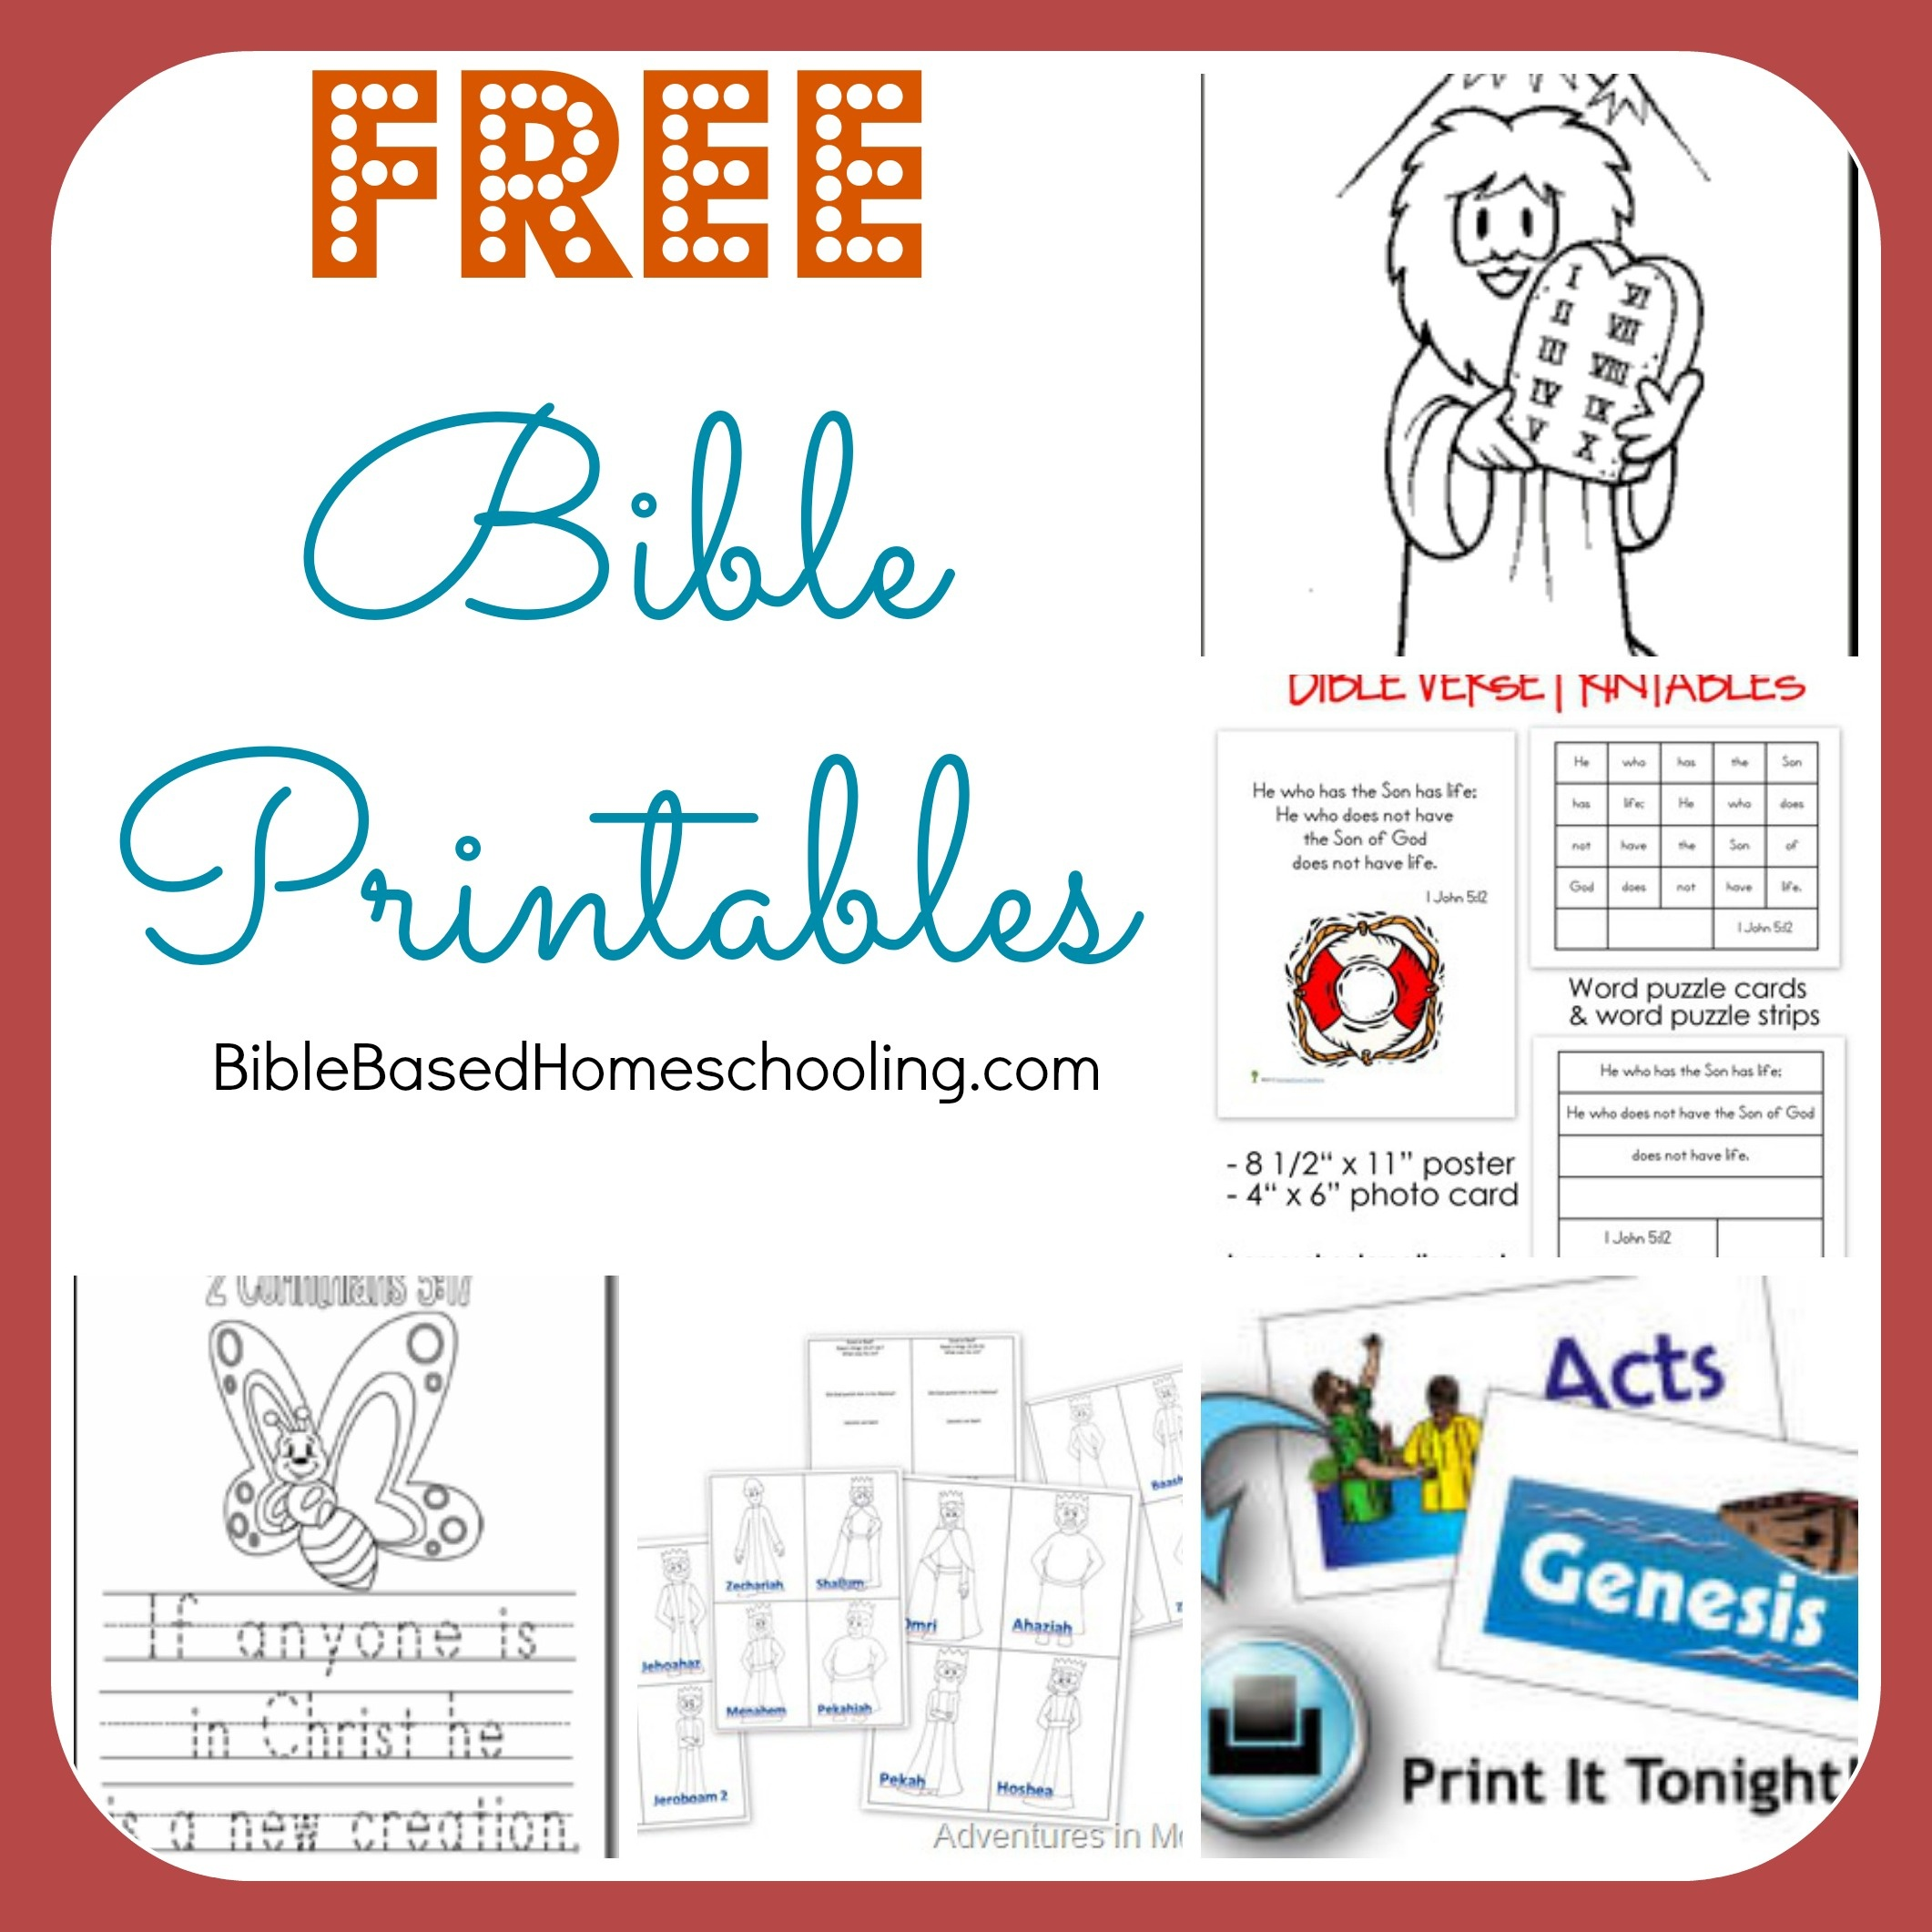 Free Printable Bible Games (87+ Images In Collection) Page 2 - Free Printable Bible Games For Kids